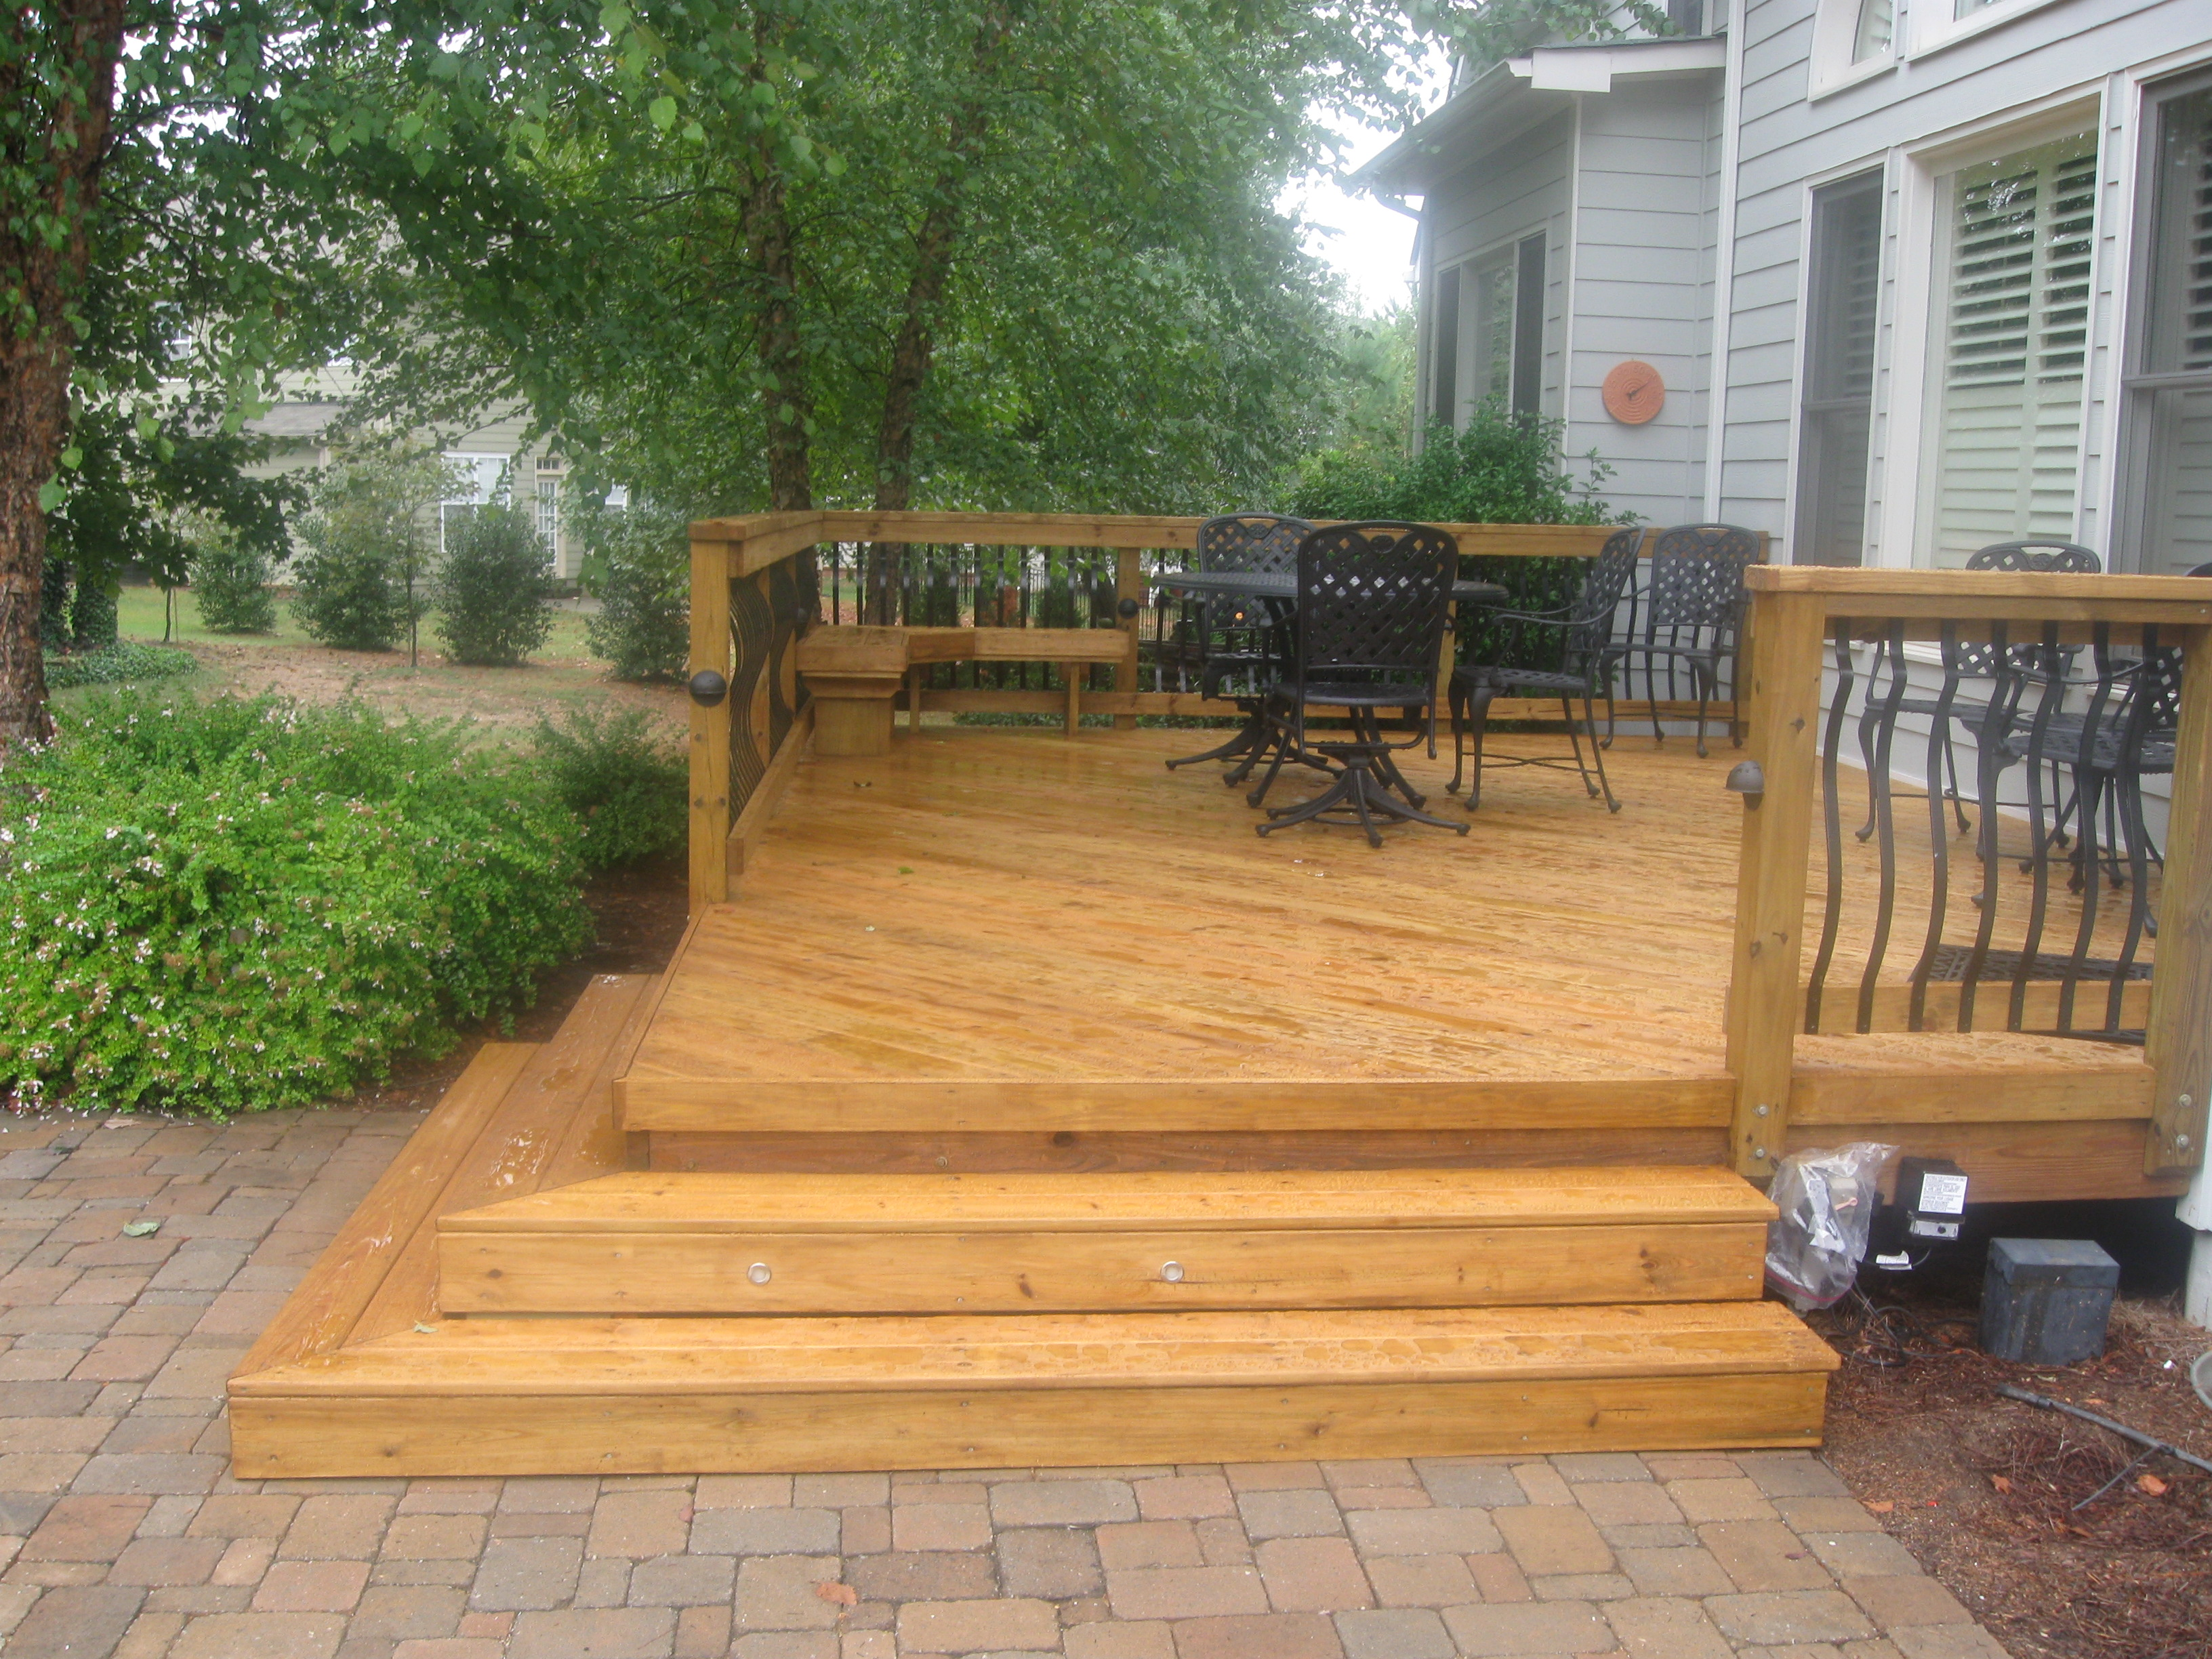 Wood backyard Deck design with Paver Patio